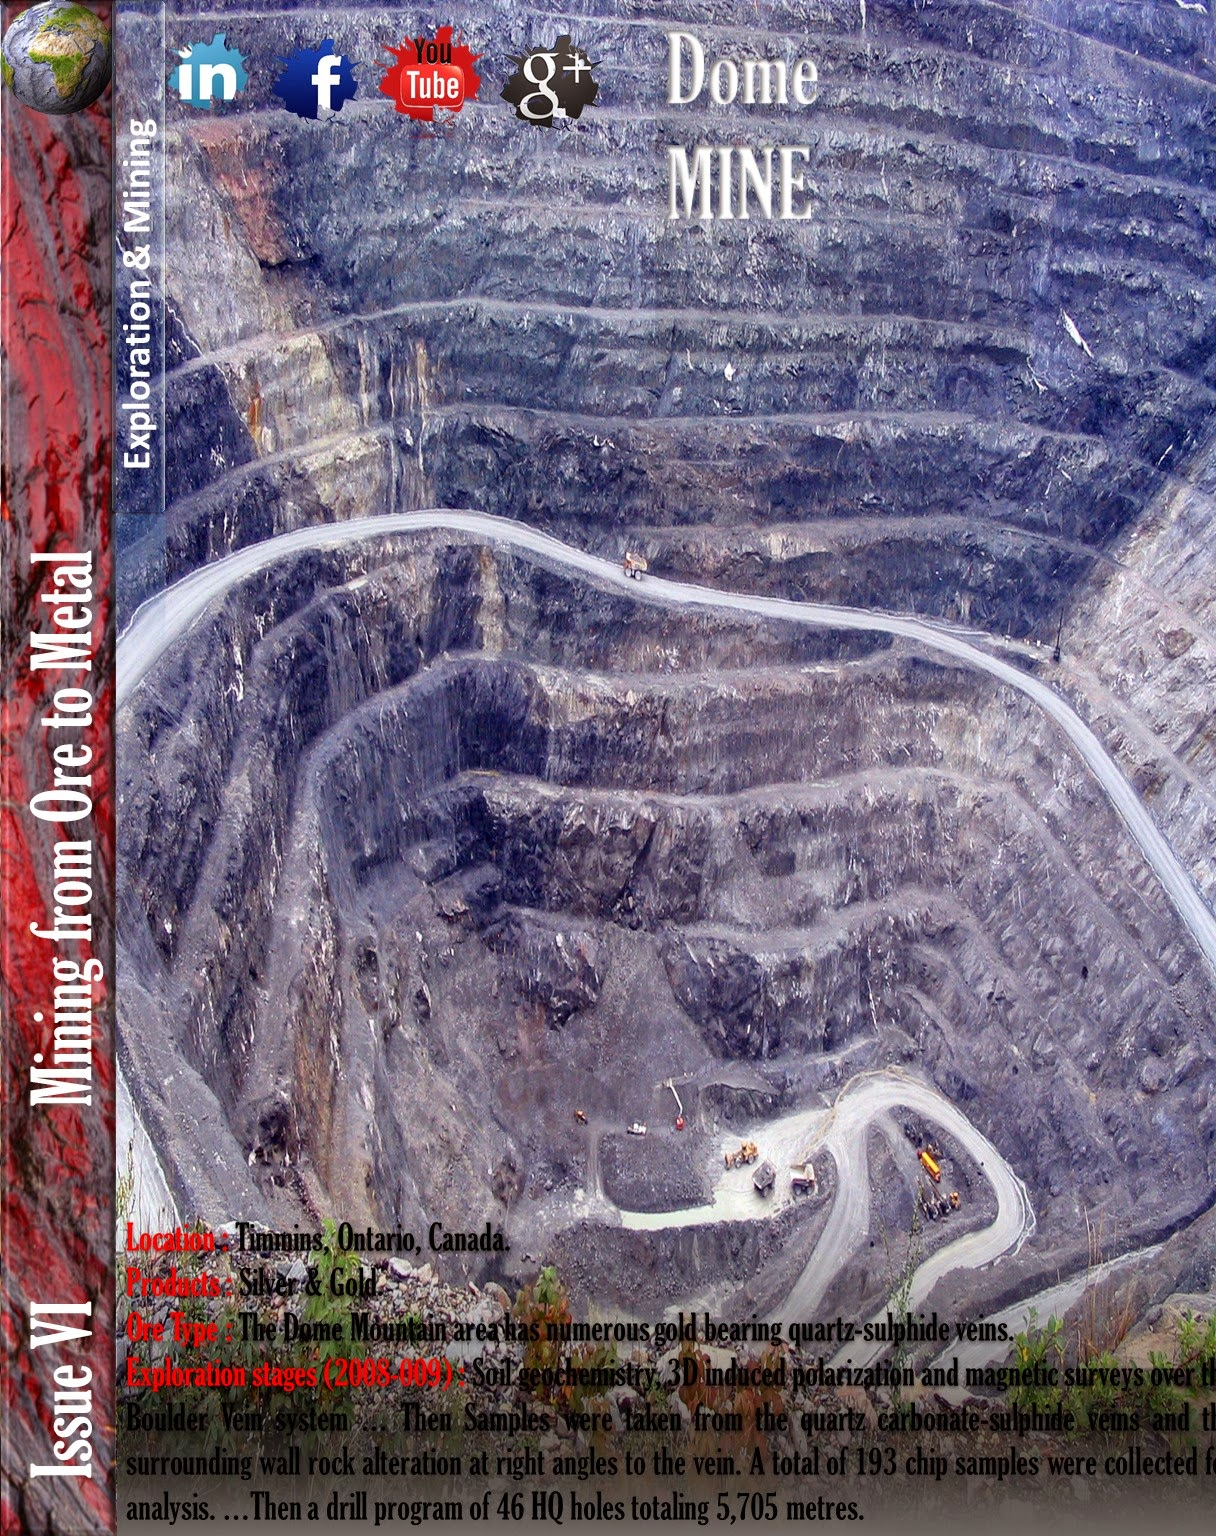 DOME MOUNTAIN MINE, ONTIRIO, CANADA